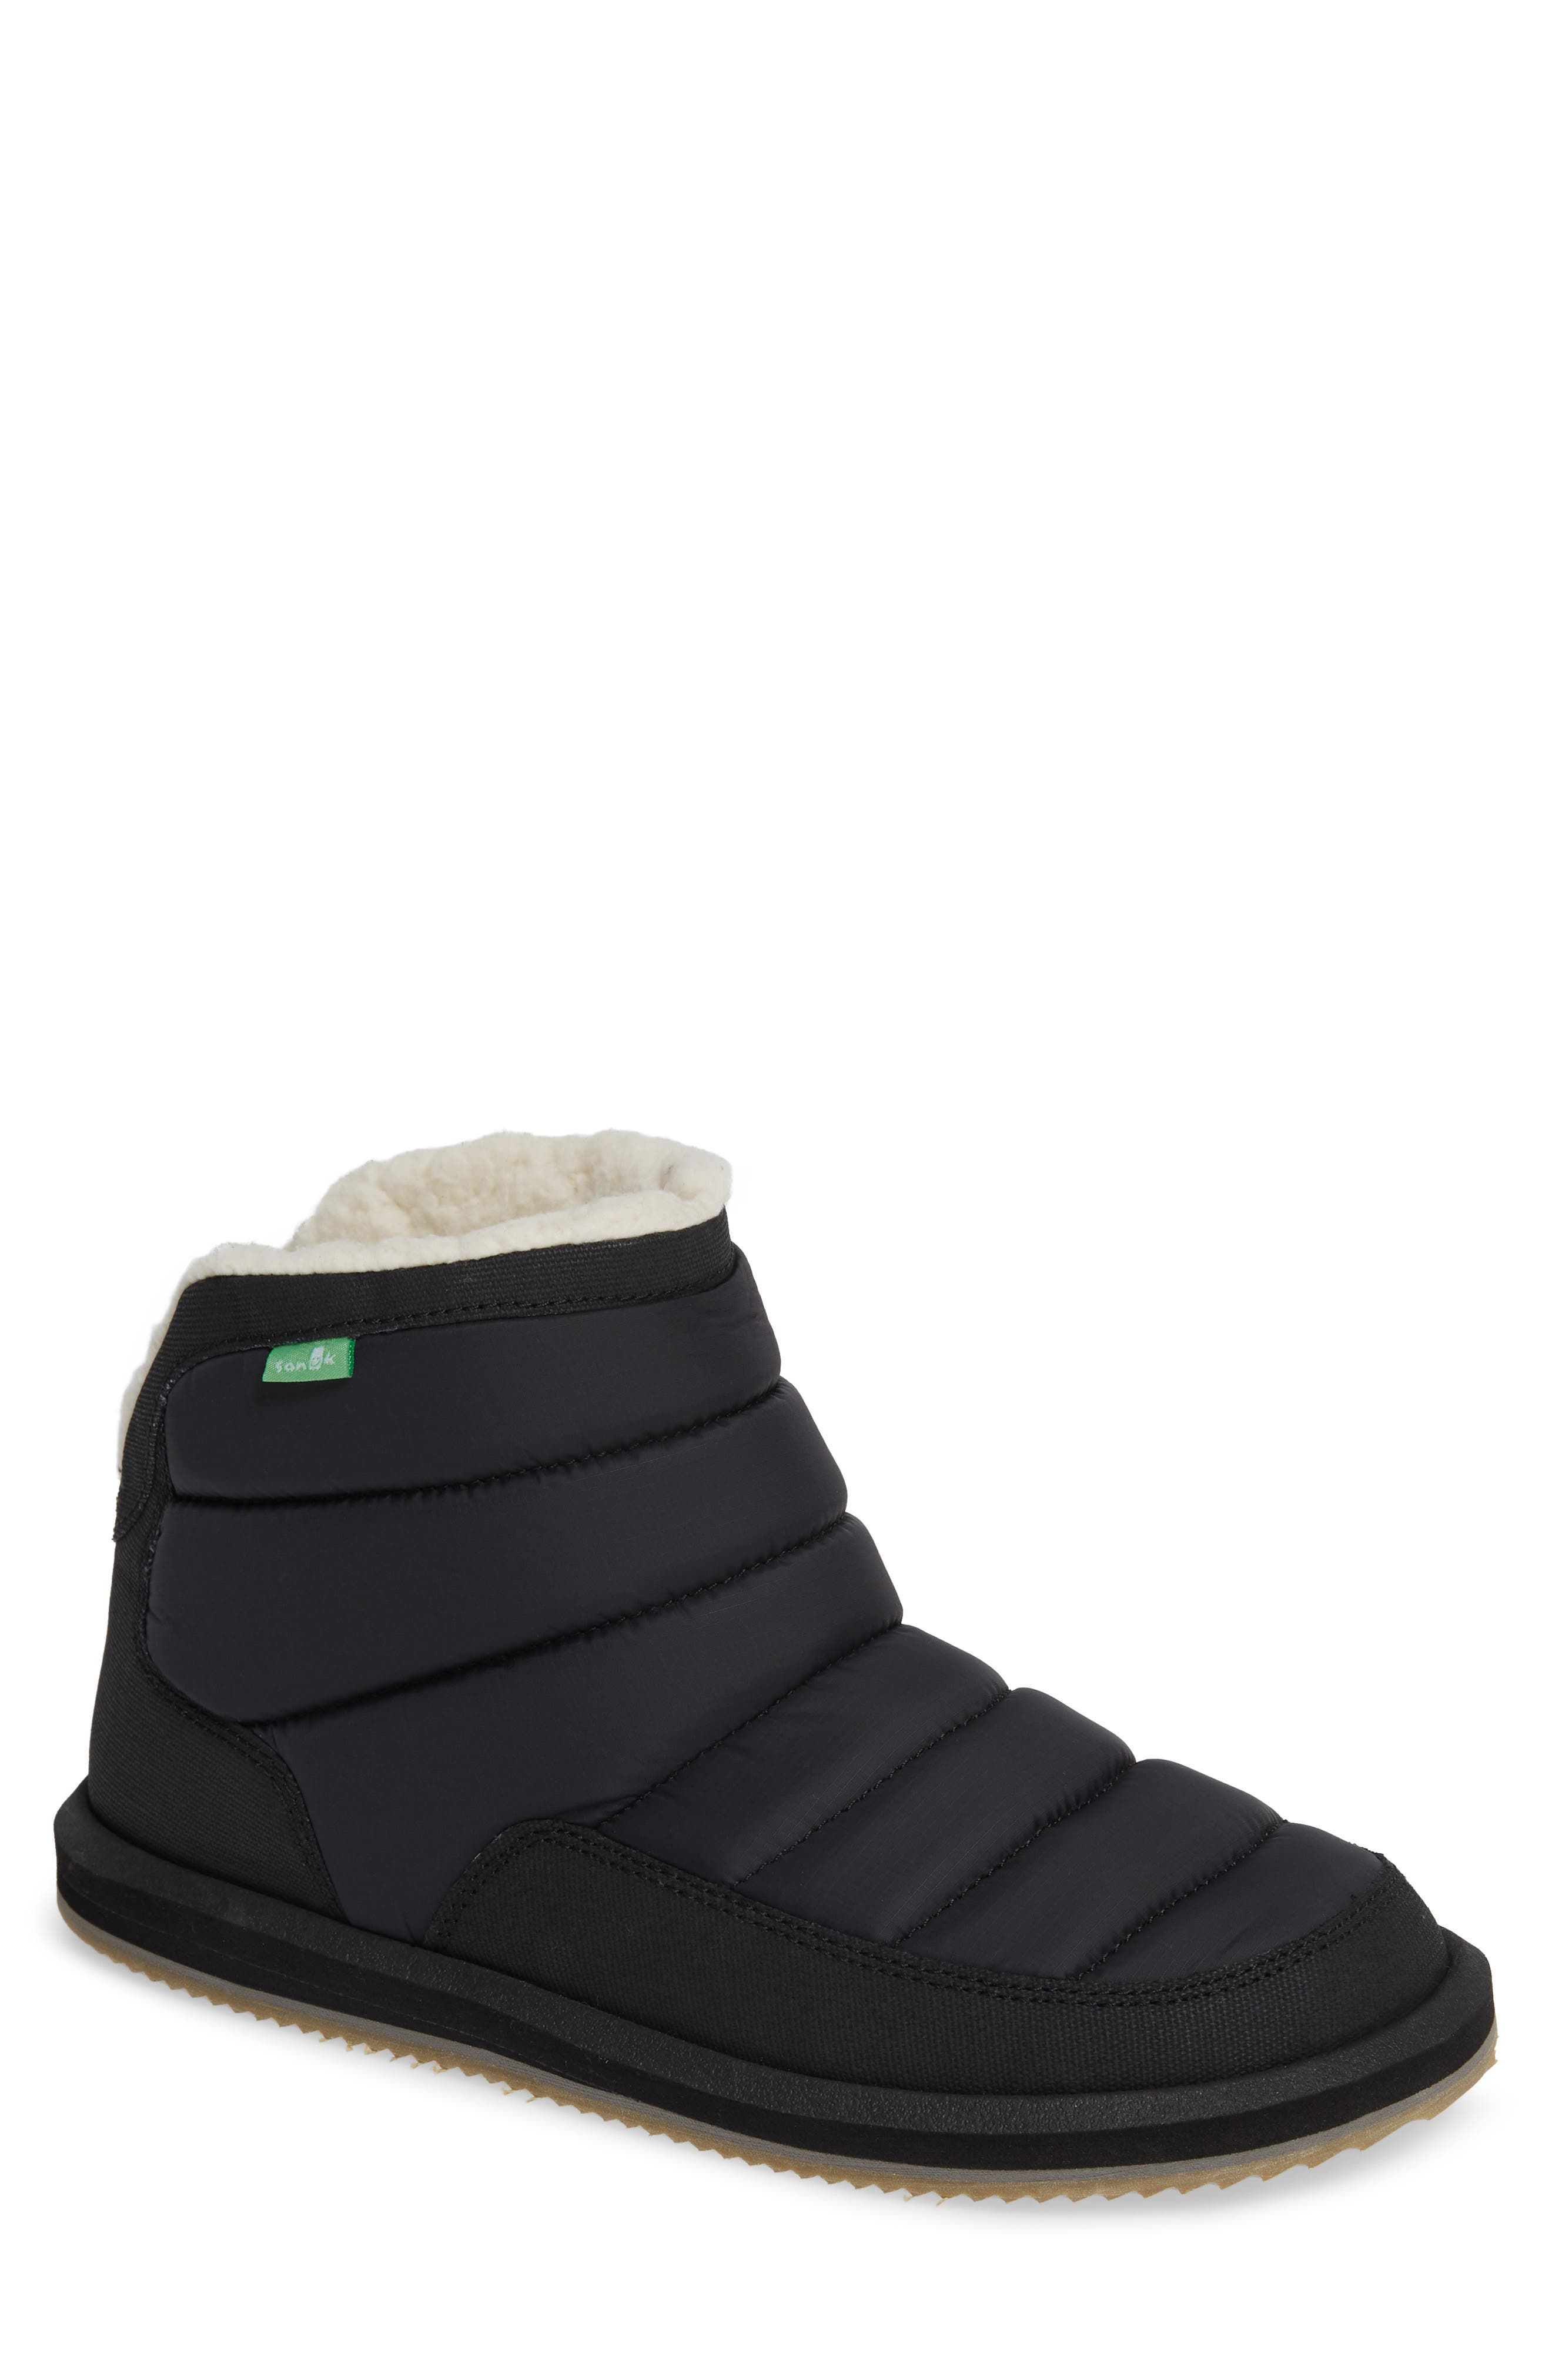 Puff & Chill Weather Boot,                         Main,                         color, BLACK